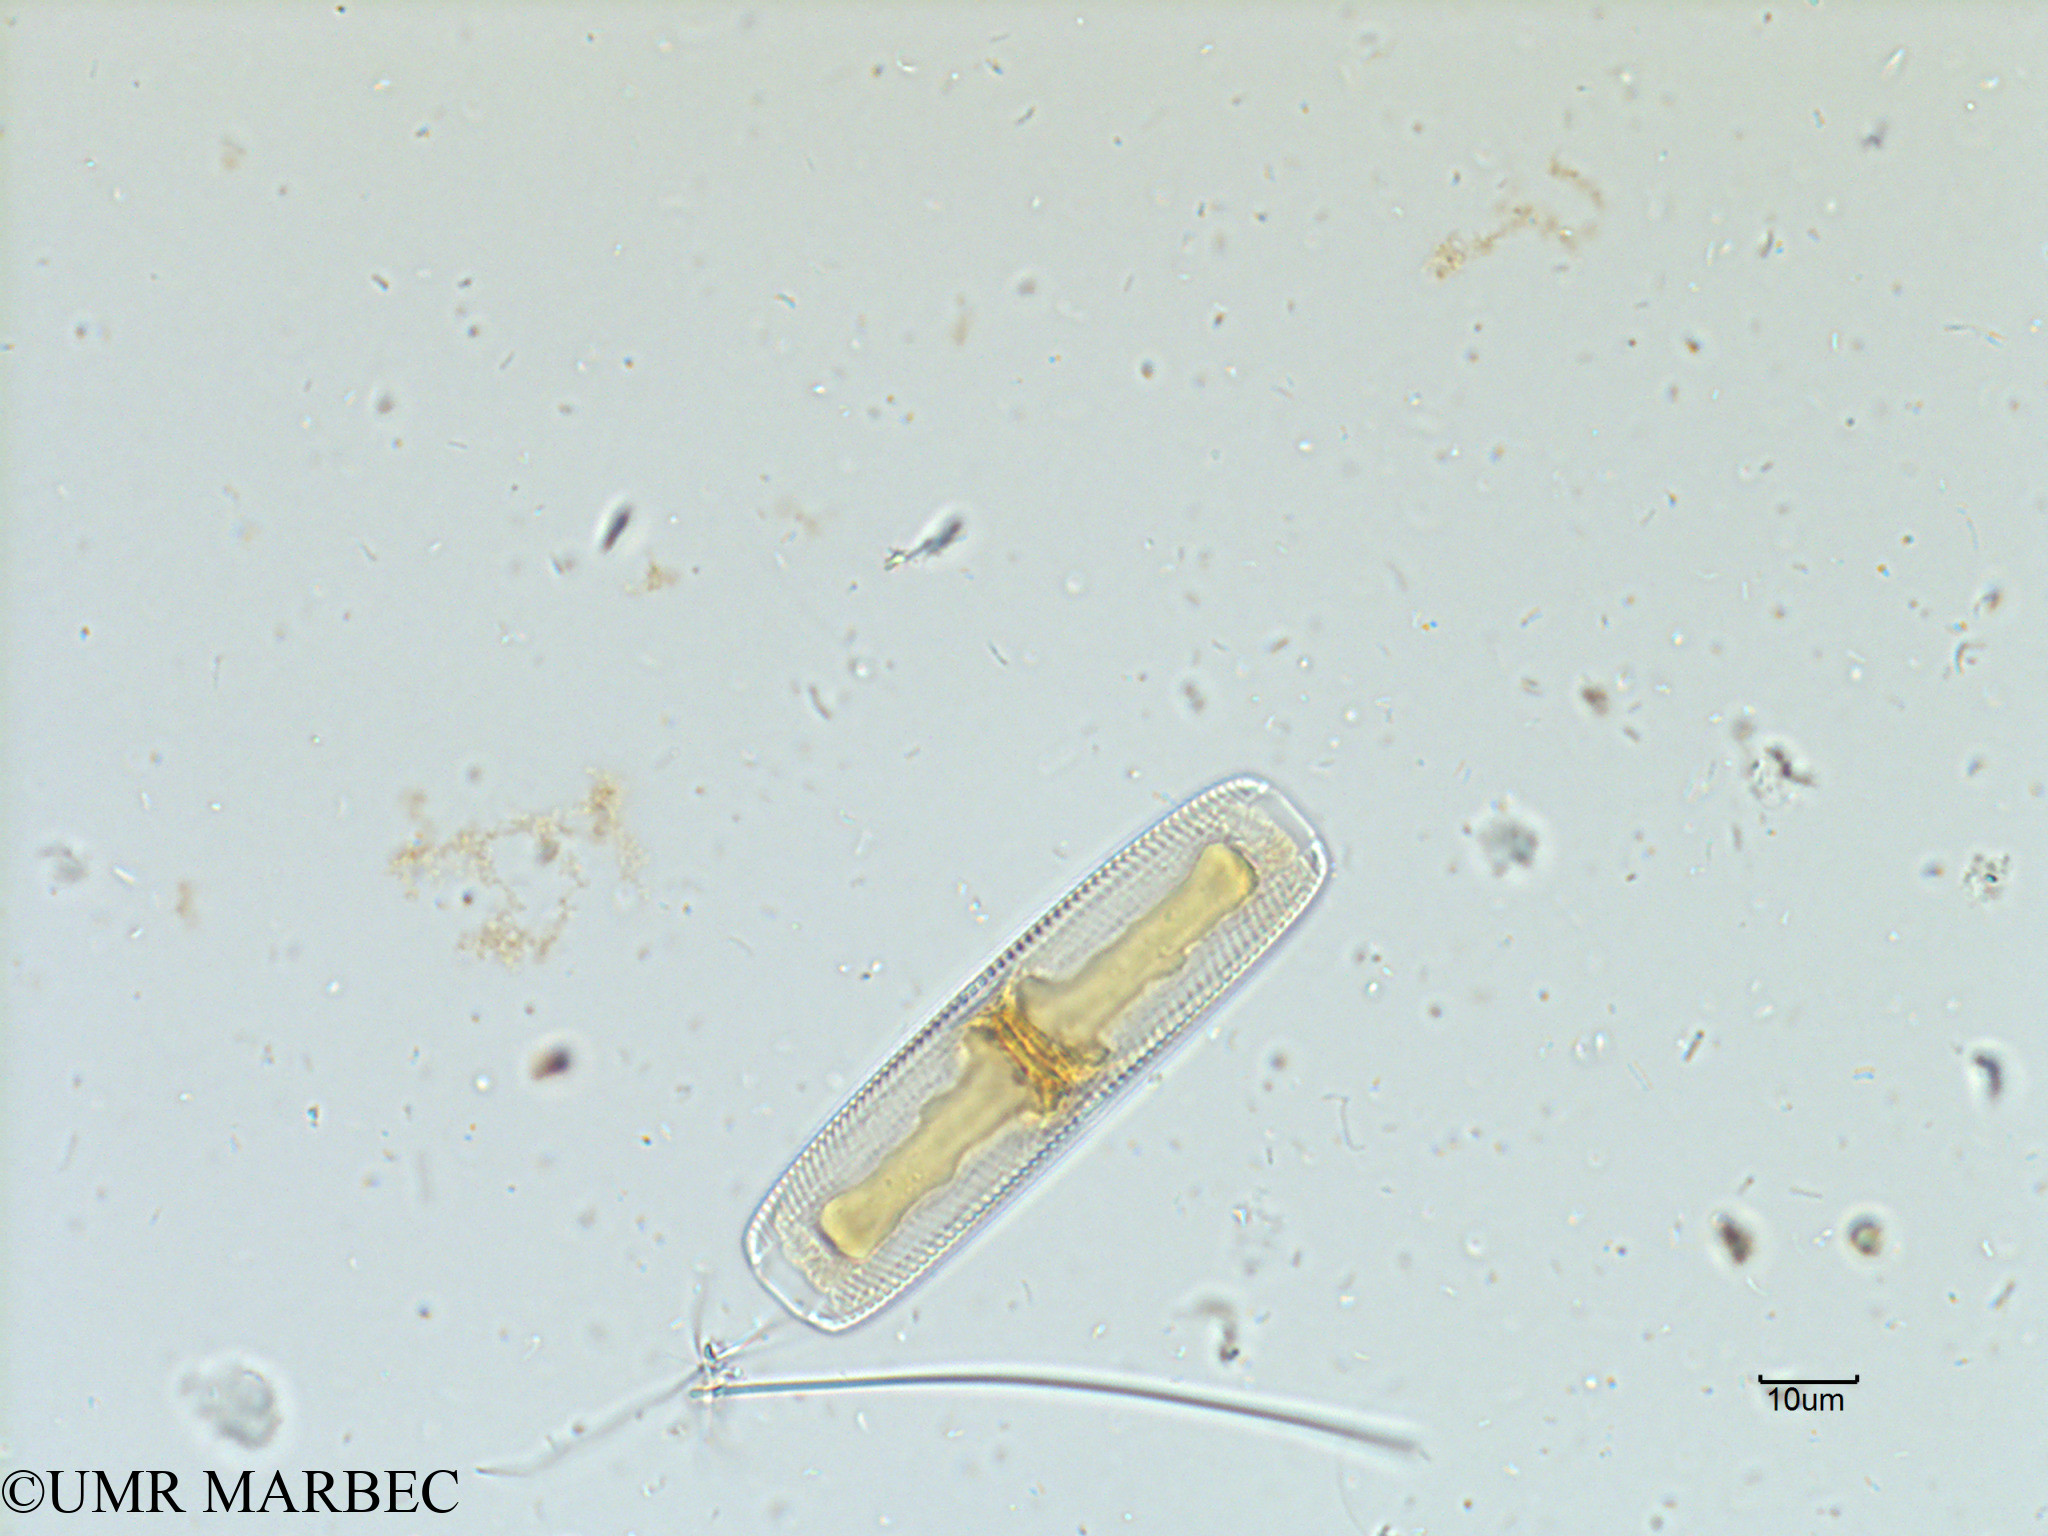 phyto/Scattered_Islands/iles_glorieuses/SIREME November 2015/Navicula sp6 (SIREME-Glorieuses2015-ech6-211116-photo34)(copy).jpg